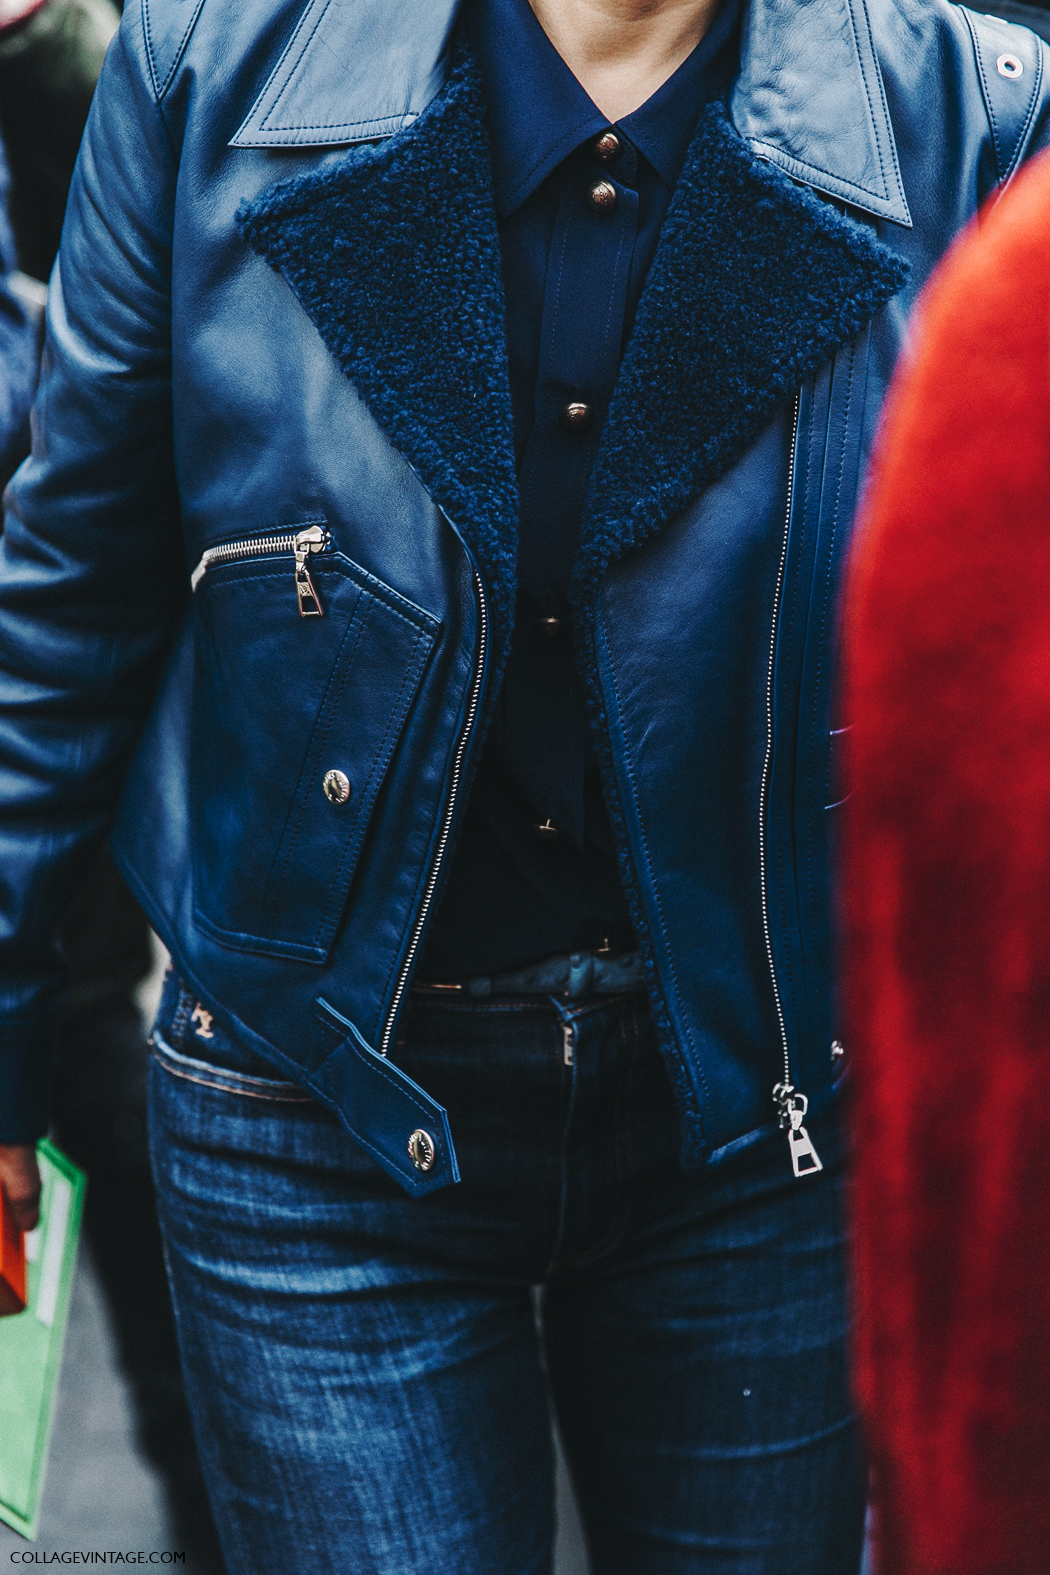 PFW-Paris_Fashion_Week_Fall_2016-Street_Style-Collage_Vintage-Miu_Miu-LEather_Jacket-Navy_Blue-